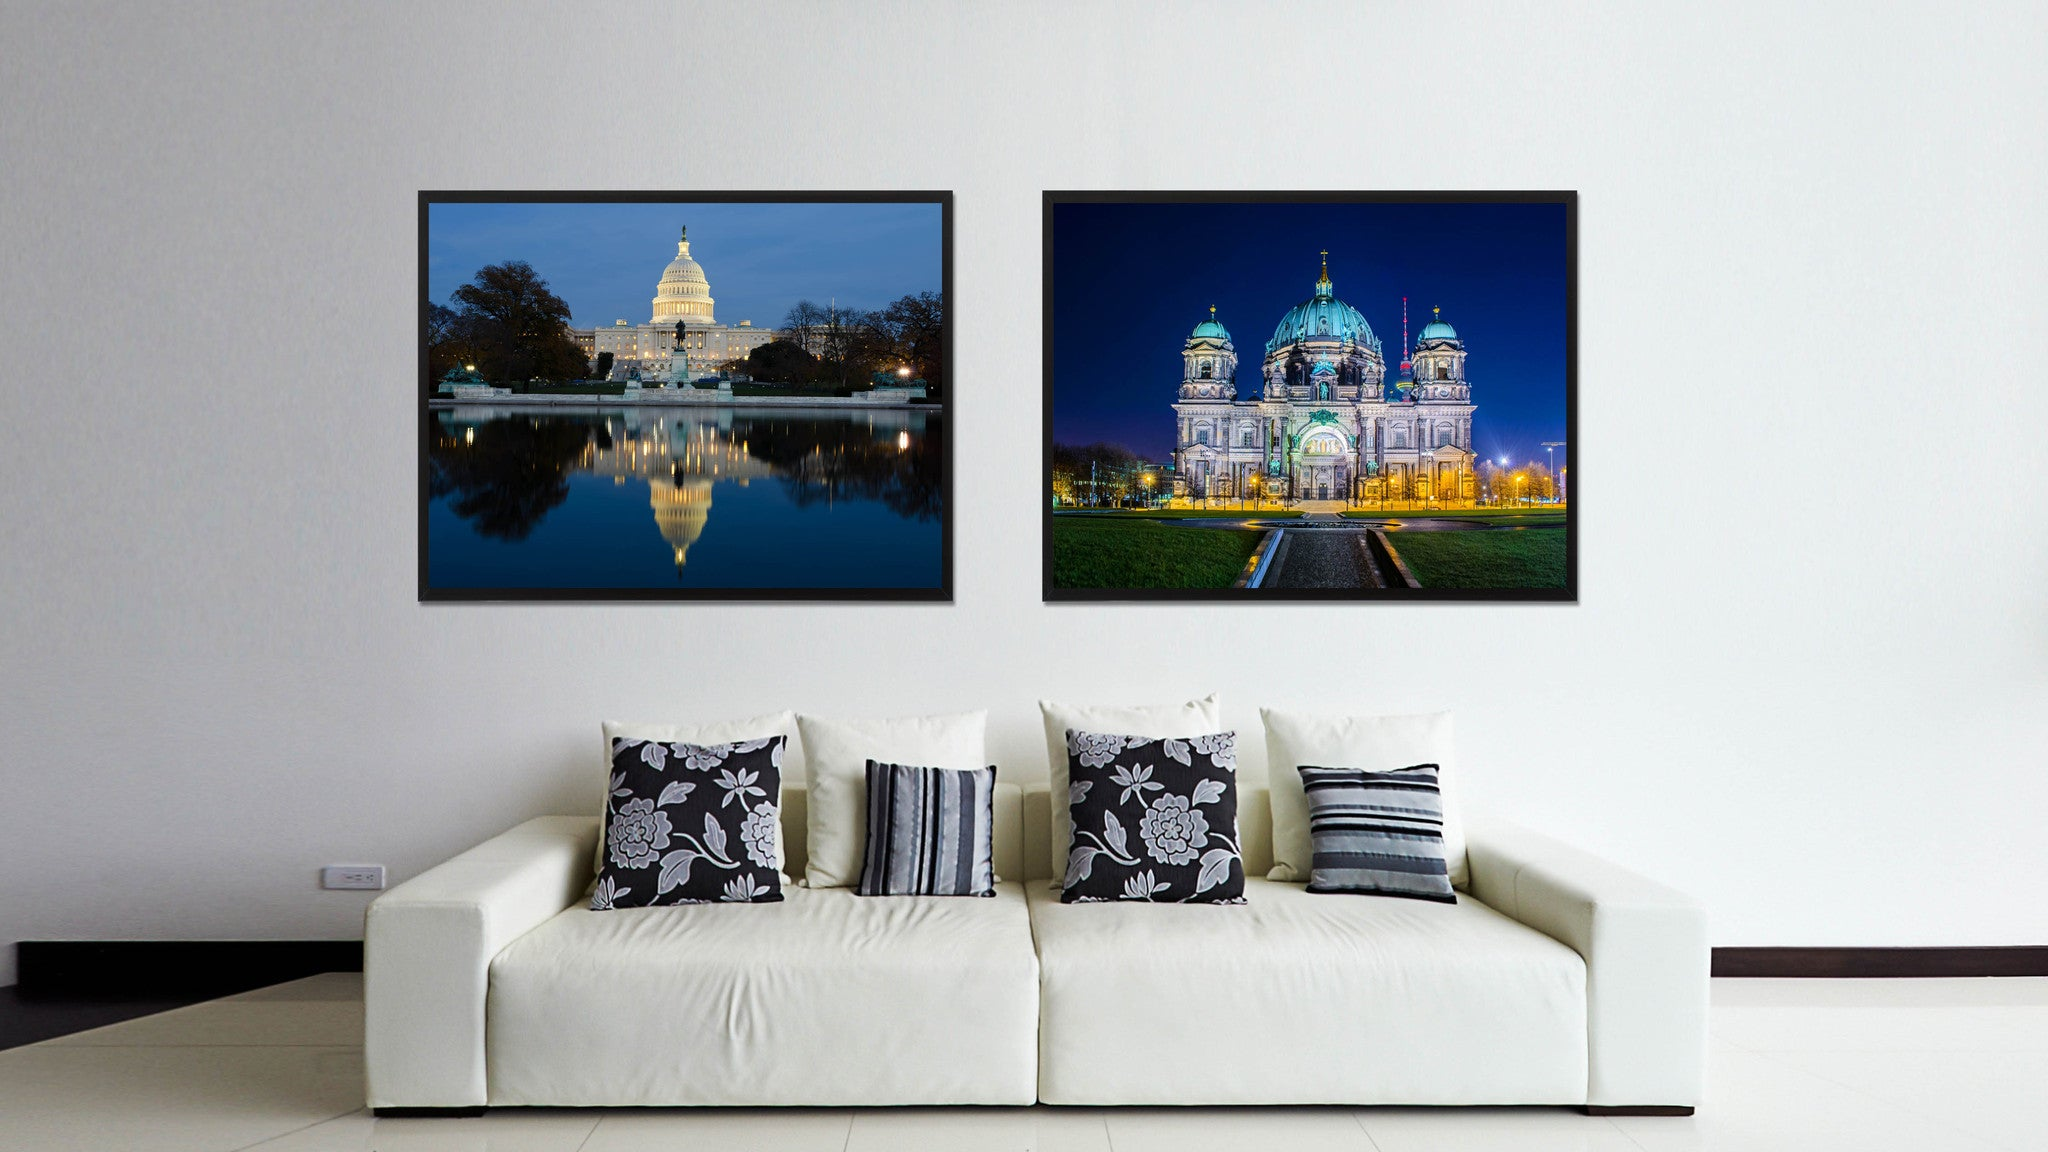 Berliner Dom Cathedral Landscape Photo Canvas Print Pictures Frames Home Décor Wall Art Gifts